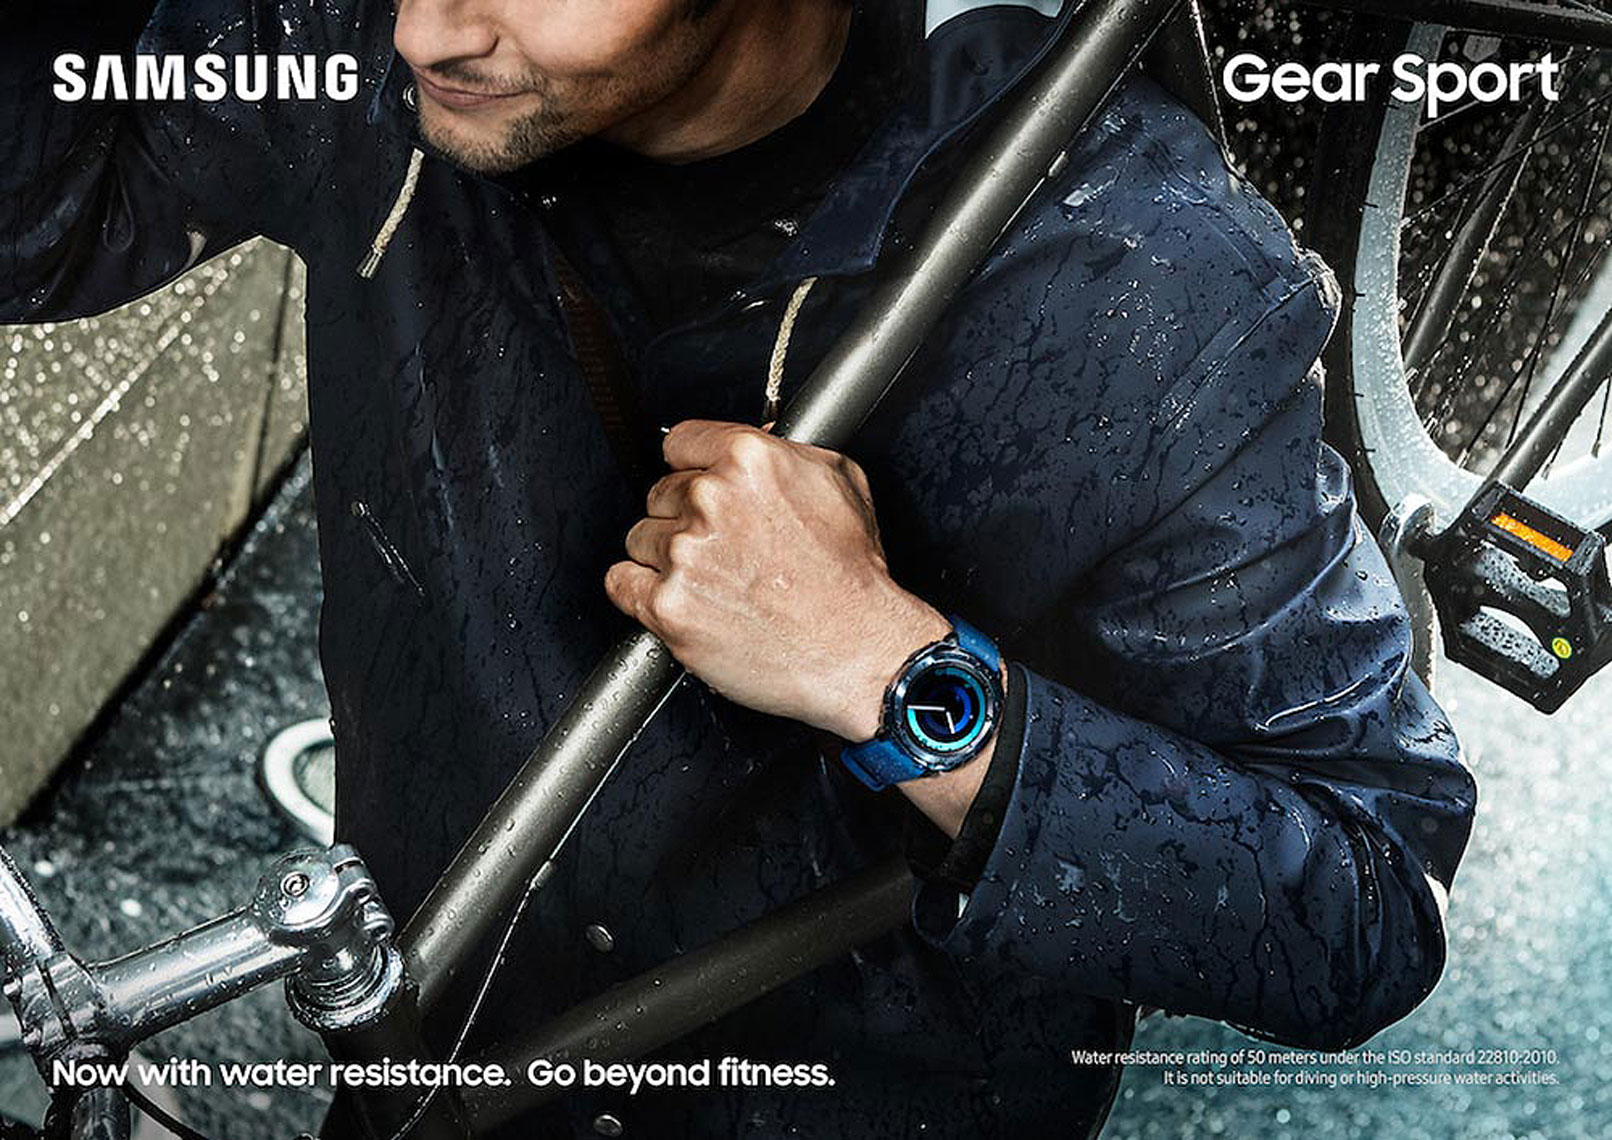 issie-gibbons-fashion-stylist-samsung-global-camapign-bike-rain